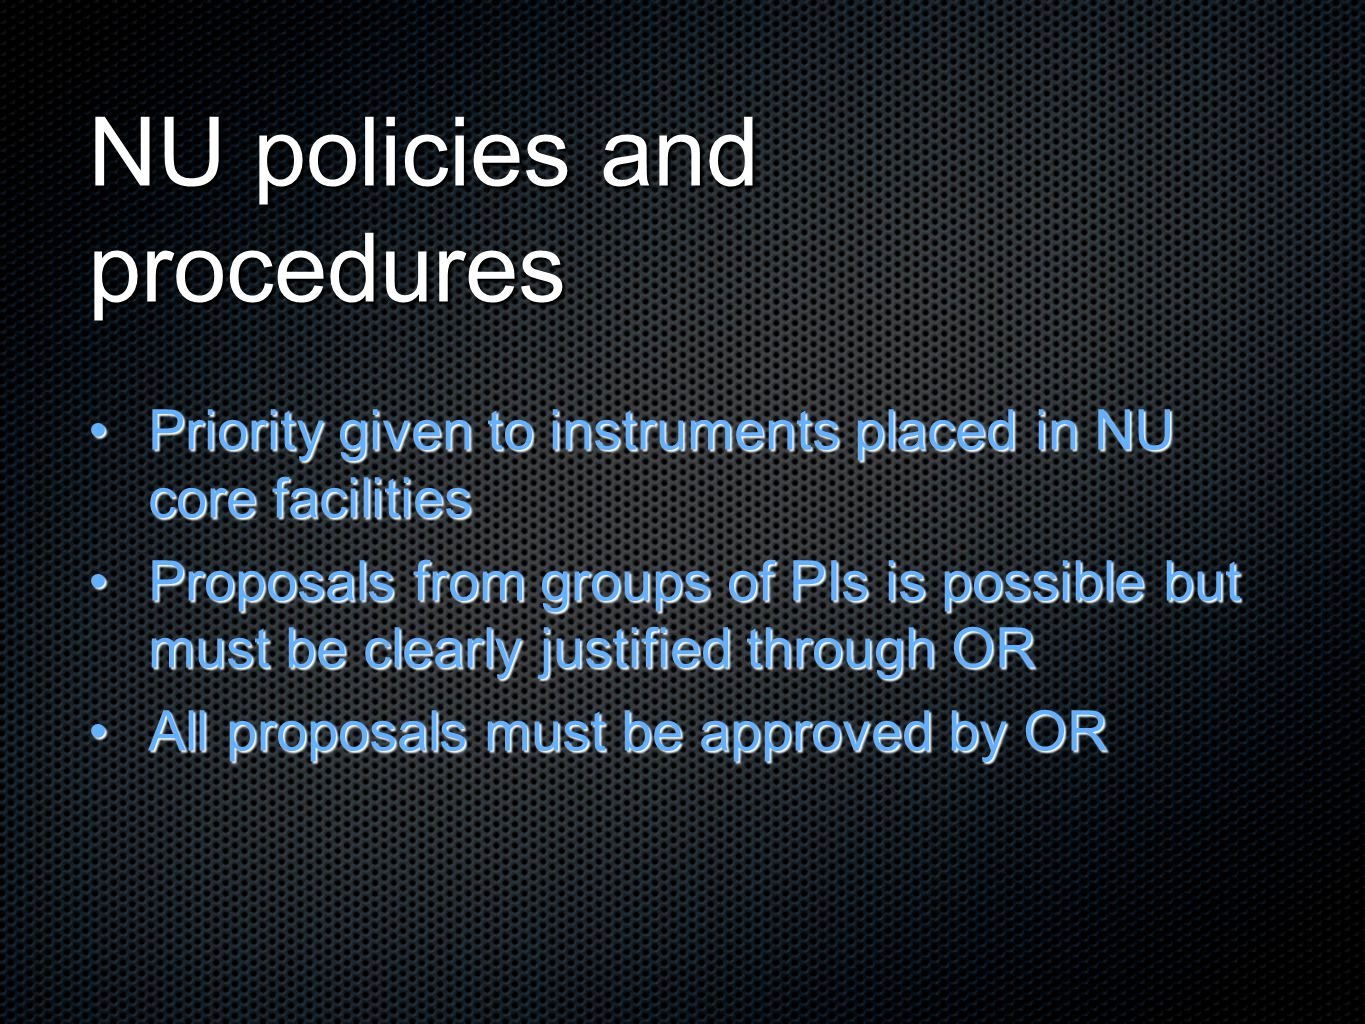 NU policies and procedures Priority given to instruments placed in NU core facilitiesPriority given to instruments placed in NU core facilities Proposals from groups of PIs is possible but must be clearly justified through ORProposals from groups of PIs is possible but must be clearly justified through OR All proposals must be approved by ORAll proposals must be approved by OR